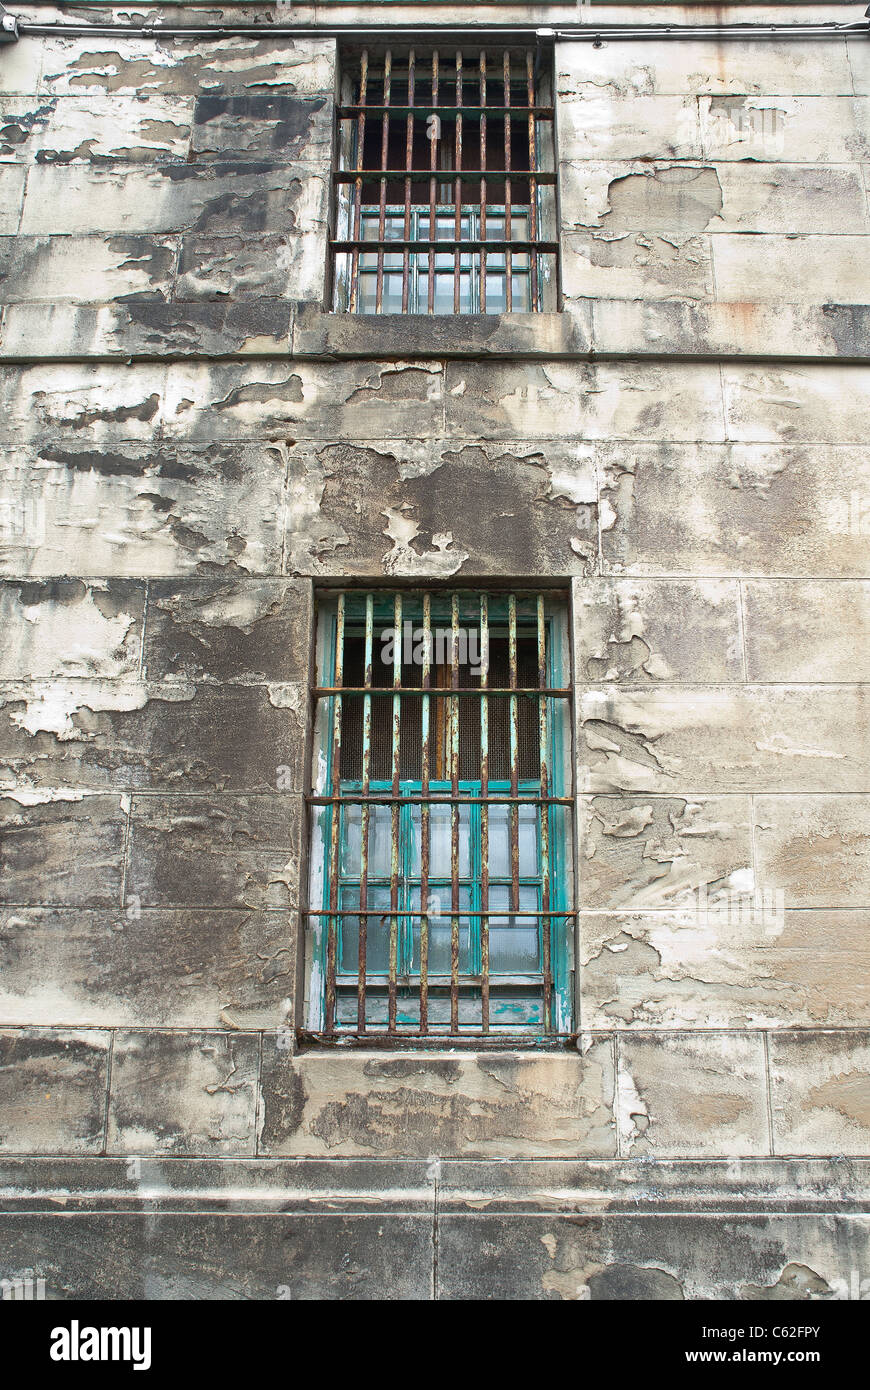 Old jail cell windows in Montesano, Washington State, USA. - Stock Image